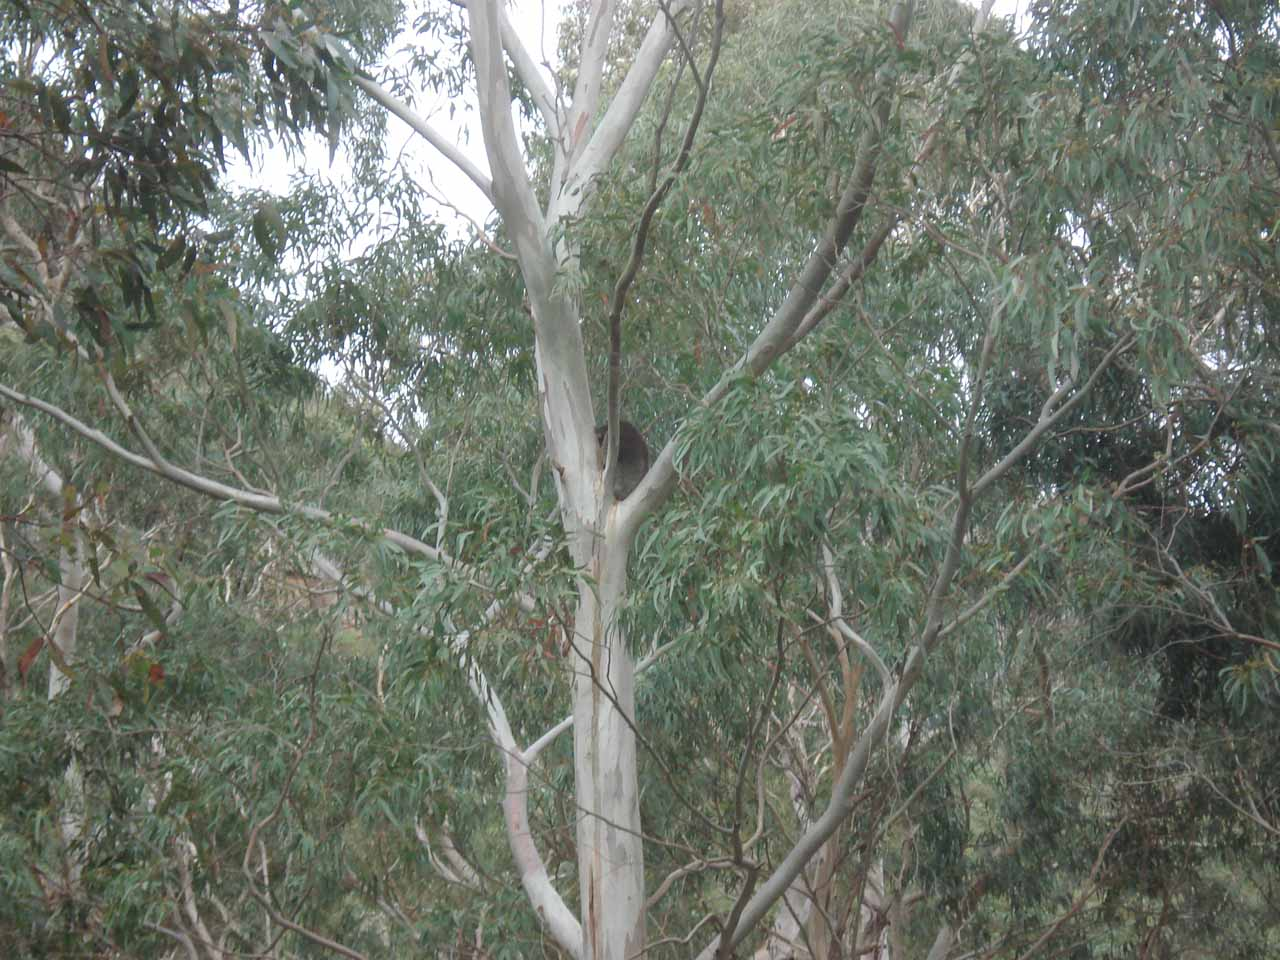 On our way out of the park (when we realized that we could walk out with a little less haste), we noticed some koalas on the trees above us